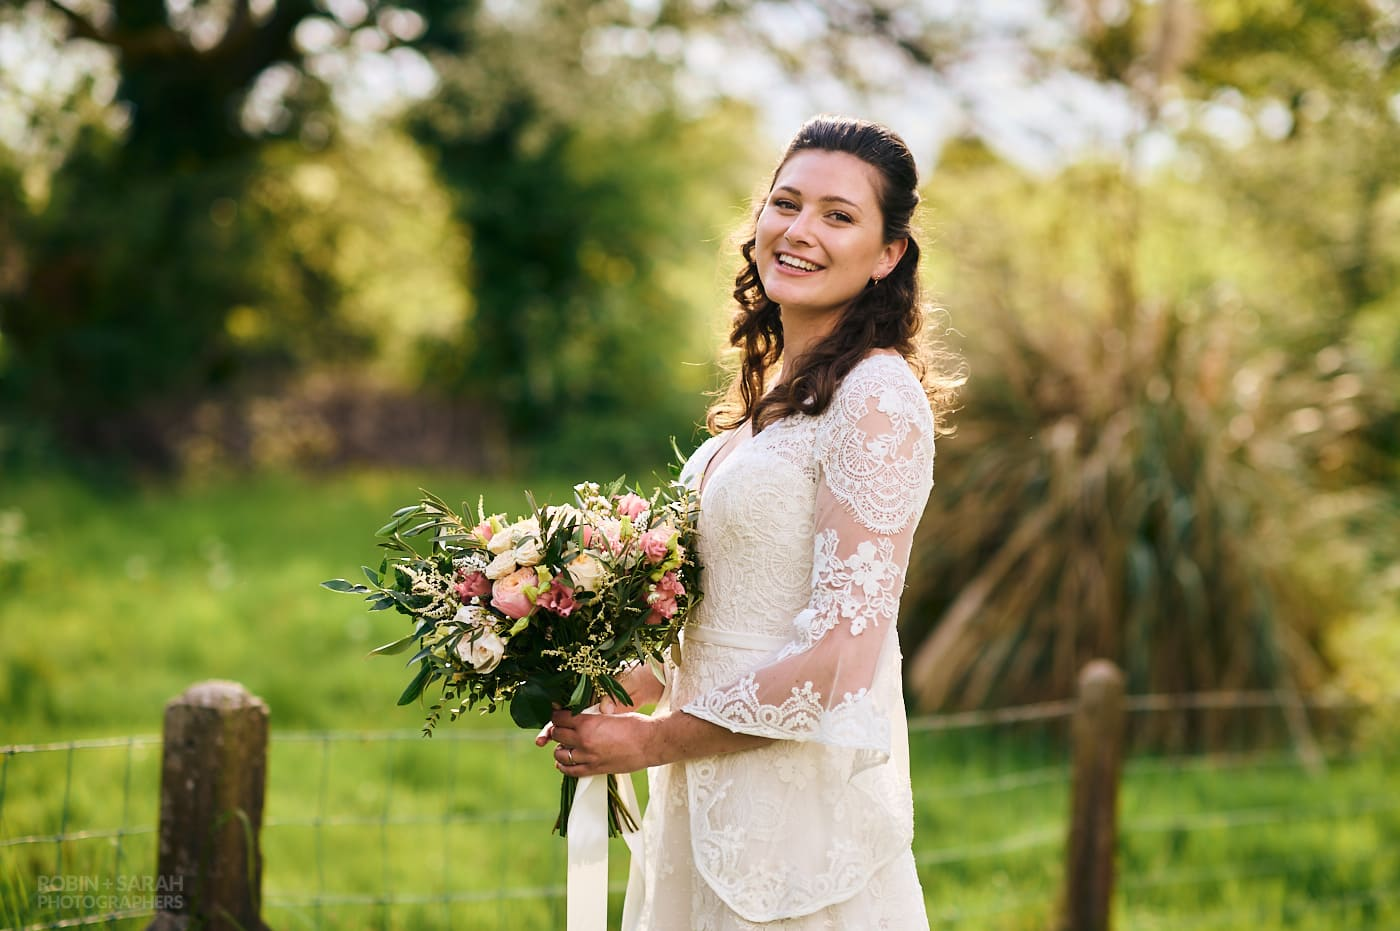 Bride holding bouquet happy and relaxed at garden wedding